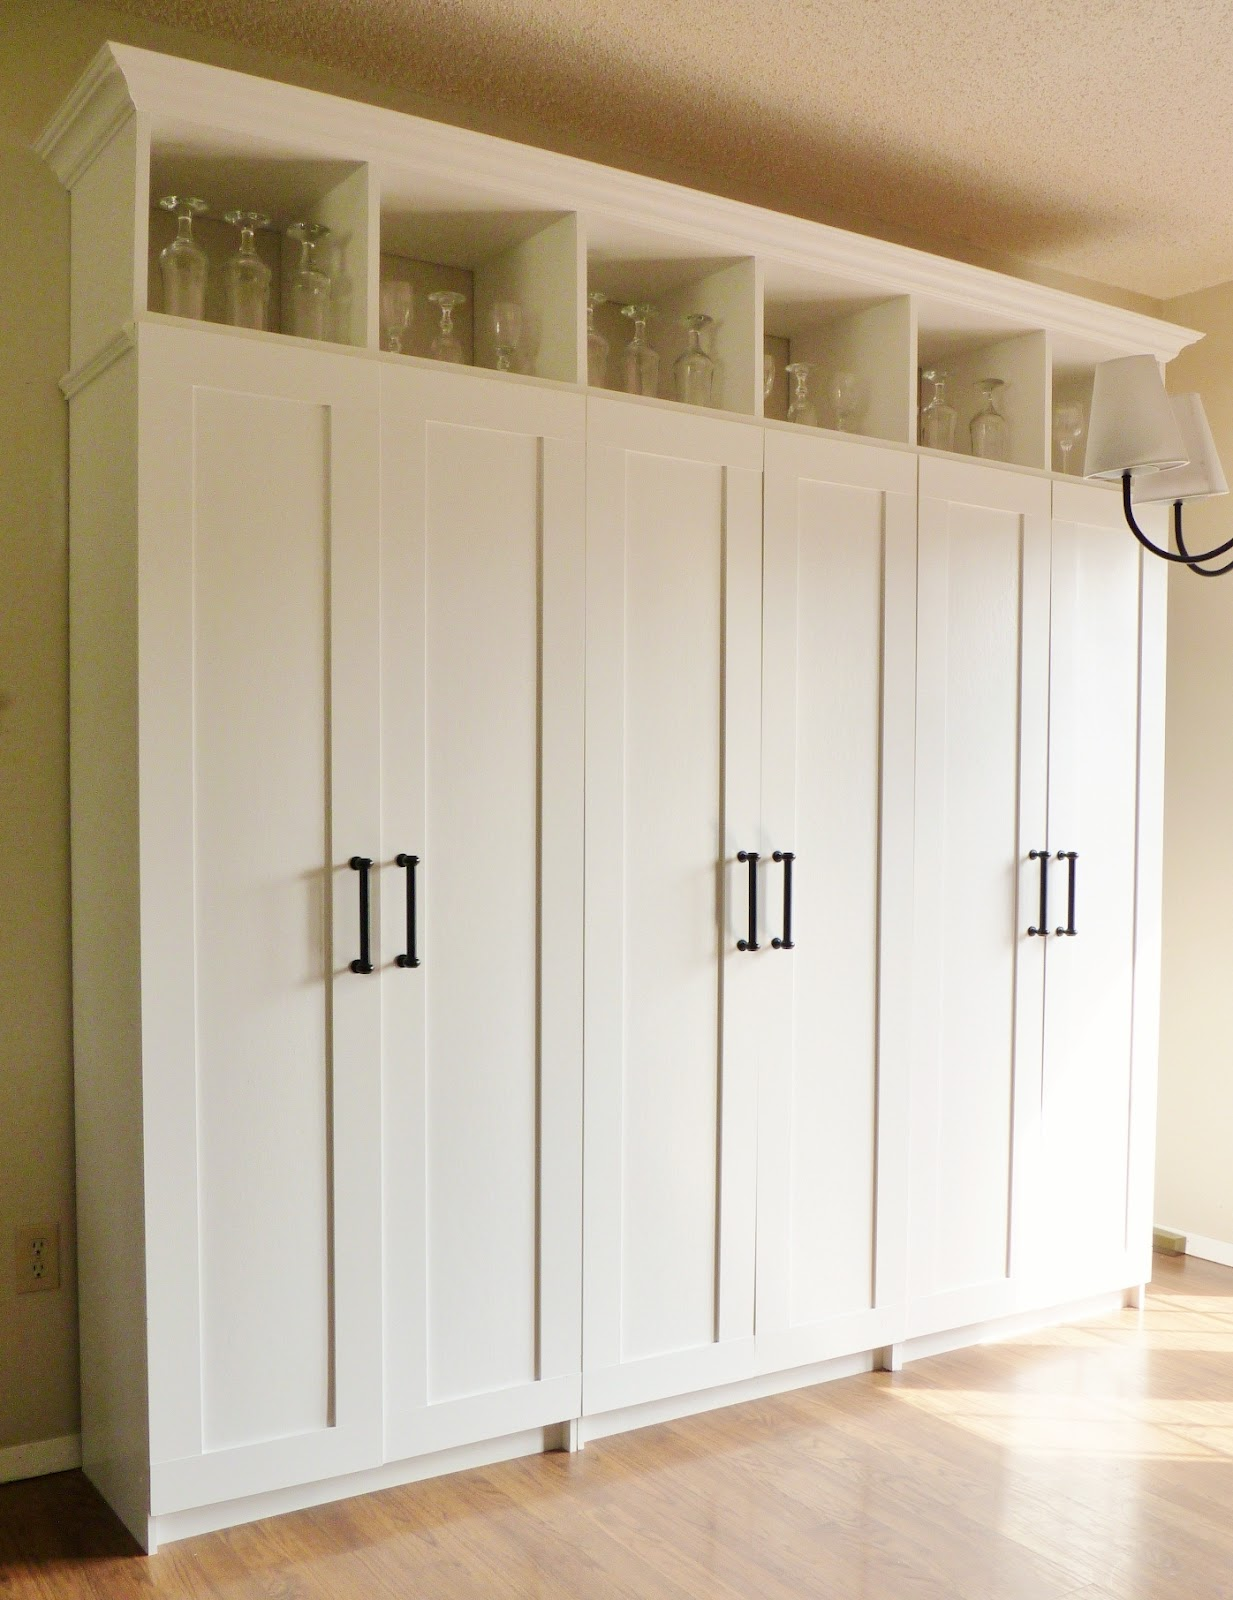 D i y d e s i g n kinda custom storage cabinet solutioingenieria Images